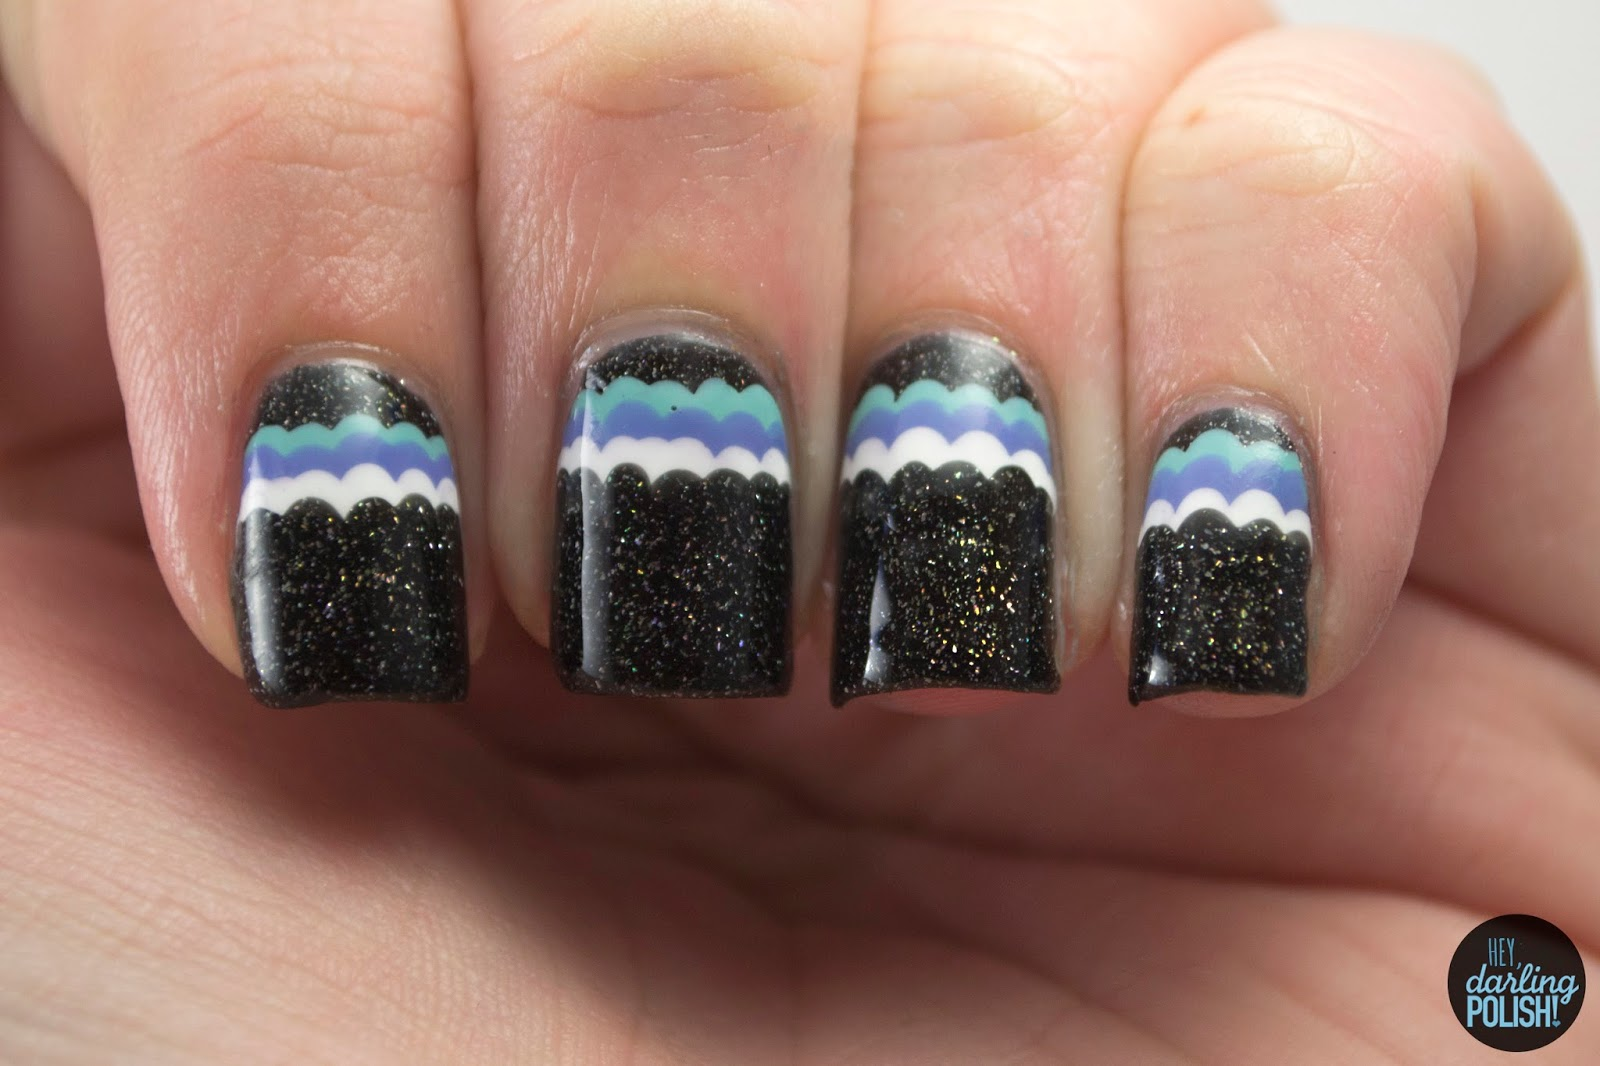 nails. nail art, nail polish, polish, ruffles, black, blue, white, purple, theme buffet, hey darling polish, zoya storm